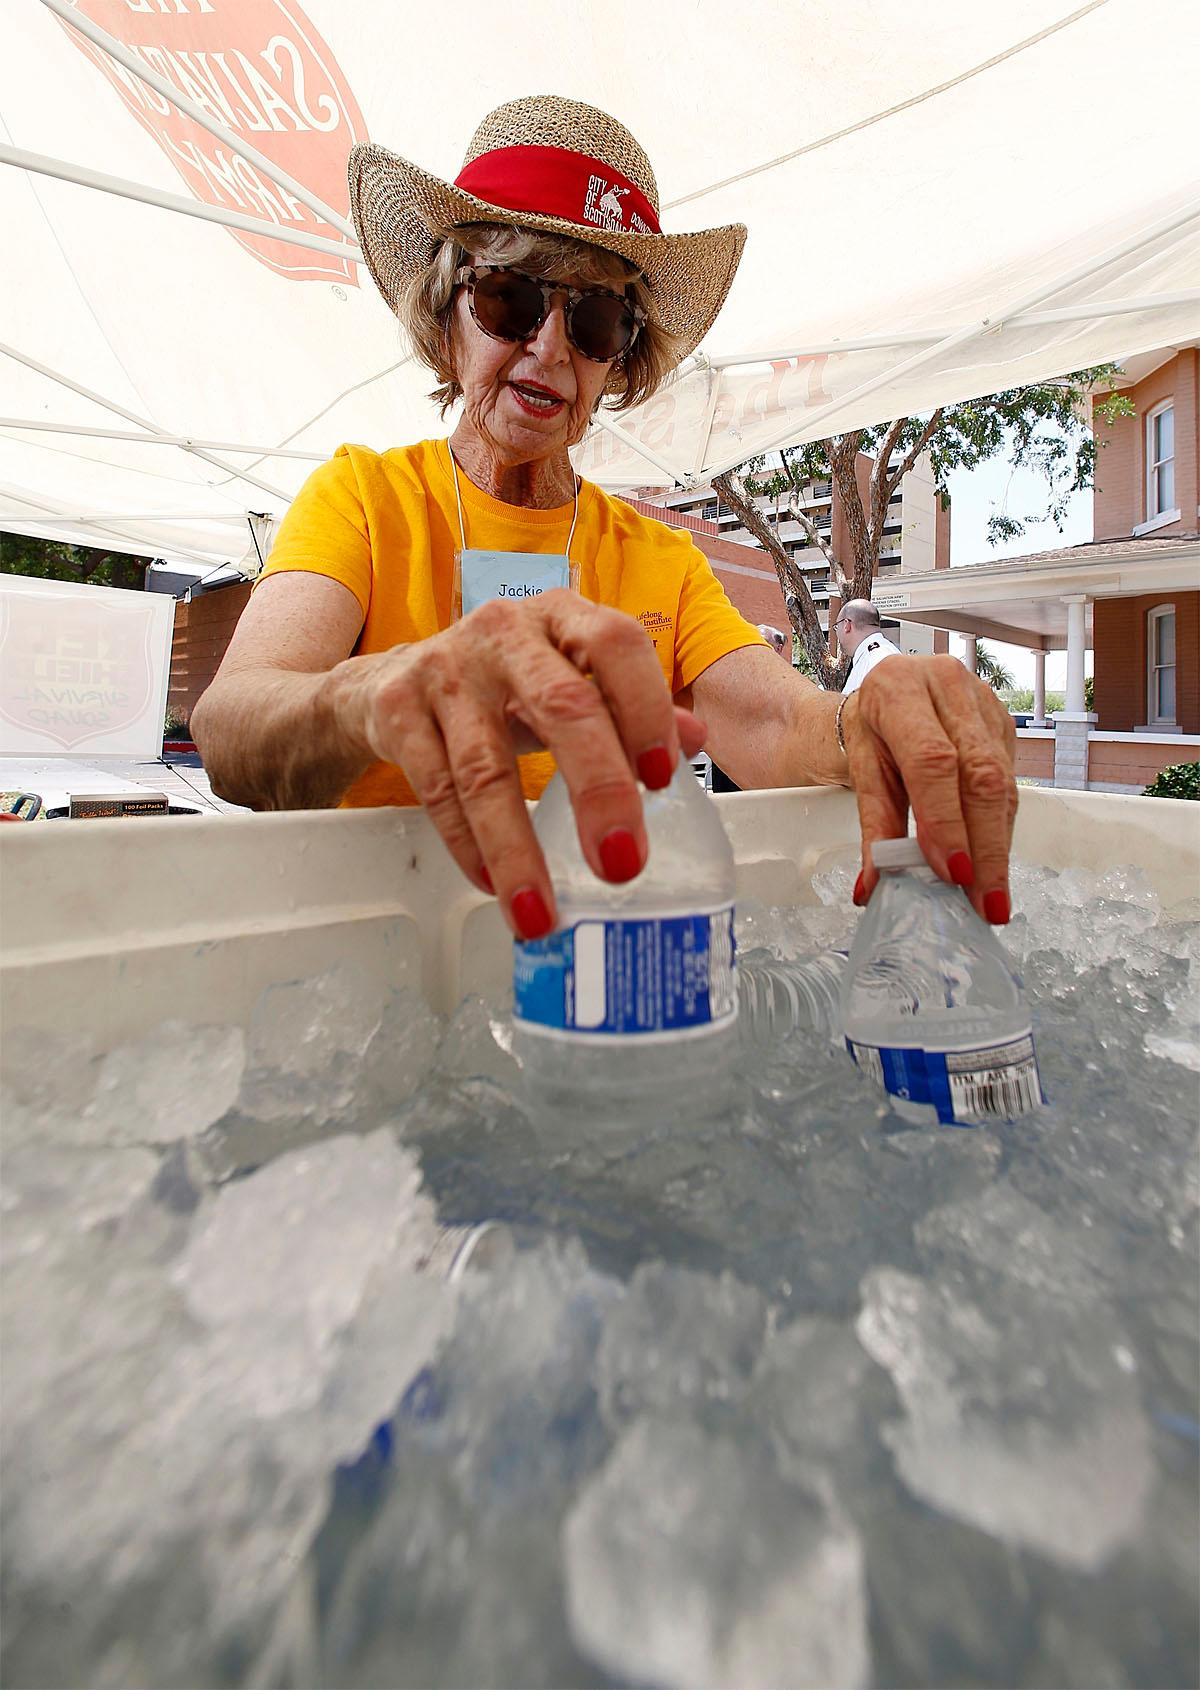 Salvation Army volunteer Jackie Rifkin checks to see if the new bottles of water in a cooler are getting cold enough to hand out to people as they try to keep hydrated and stay cool at a hydration station as temperatures climb to near-record highs, Monday, June 19, 2017, in Phoenix. (AP Photo/Ross D. Franklin)